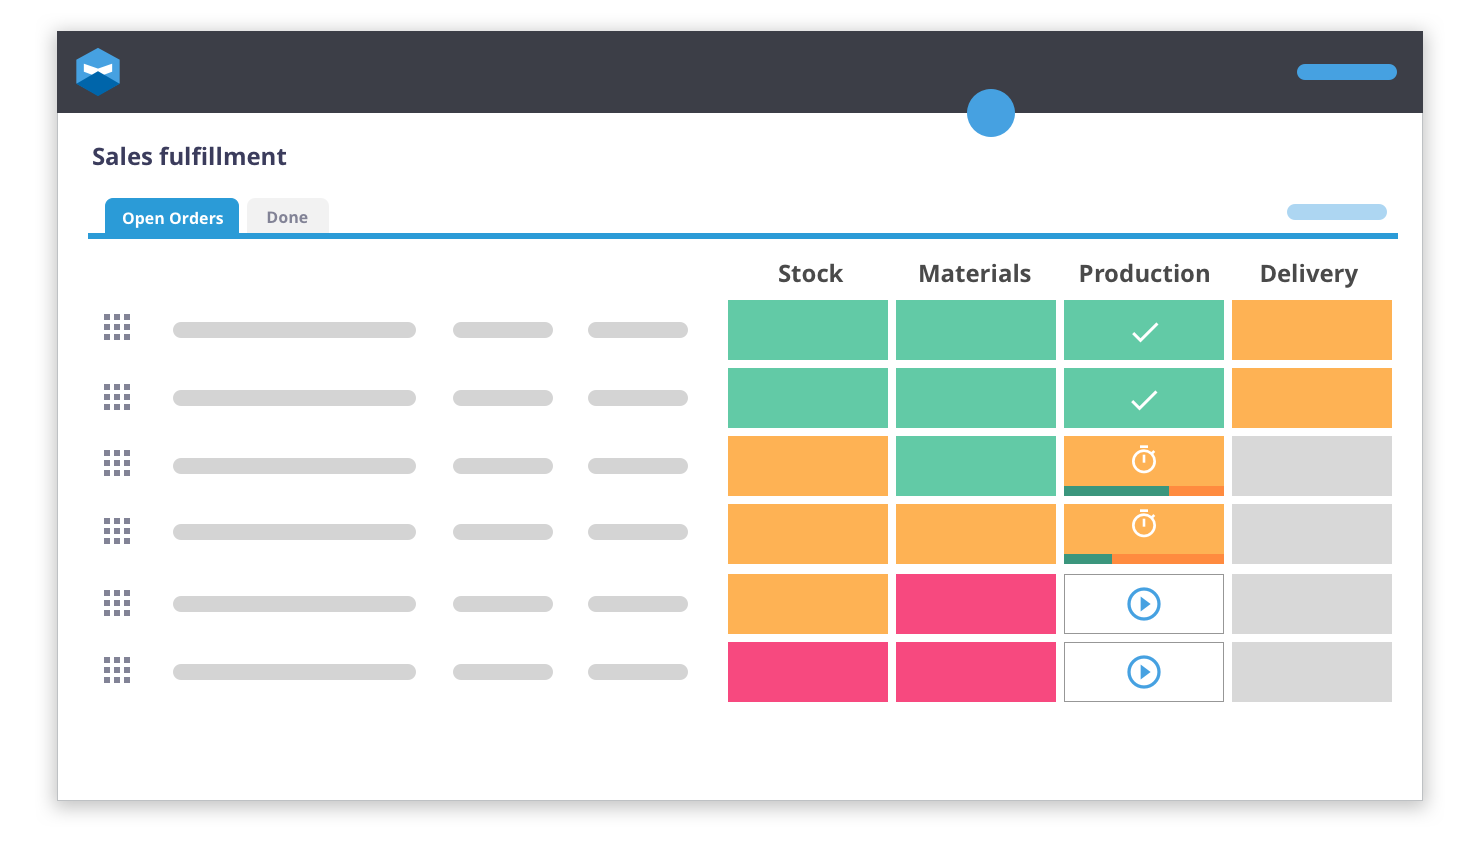 Katana follows your entire production process for sales and manufacturing orders from start to finish. That means that your QuickBooks raw material inventory is constantly being updated in real-time and allocated to orders separately. Never will your use of materials overlap again!